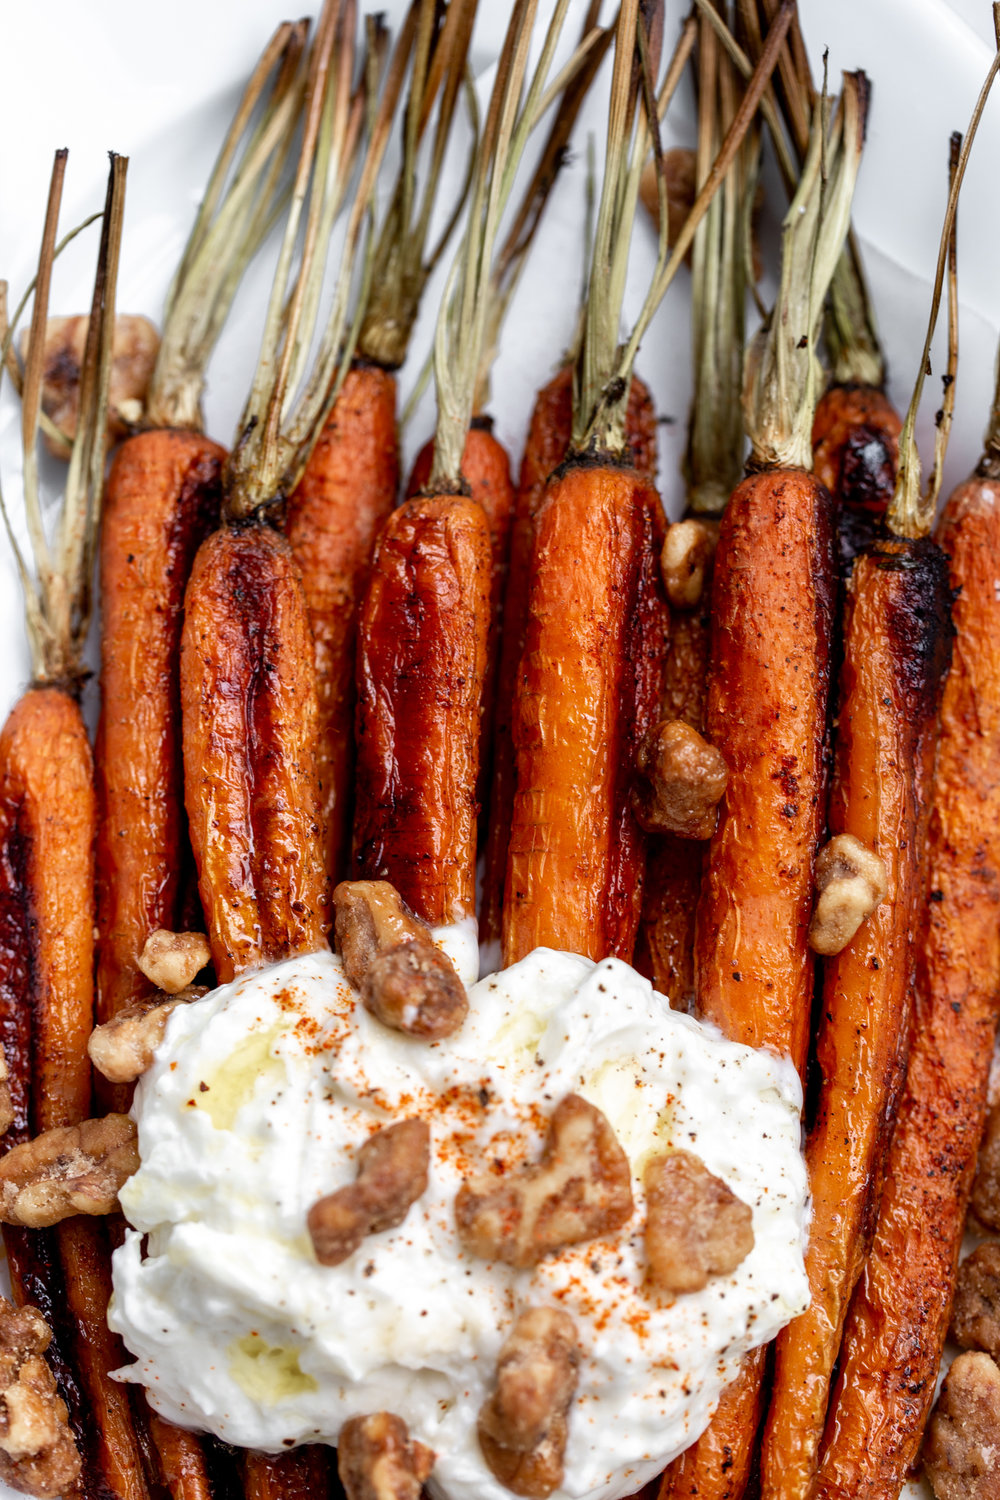 The roasted carrots are seasoned simply with salt, pepper and a touch of cayenne for a bit of spice then topped with creamy burrata cheese and some crispy, glazed walnuts closeup